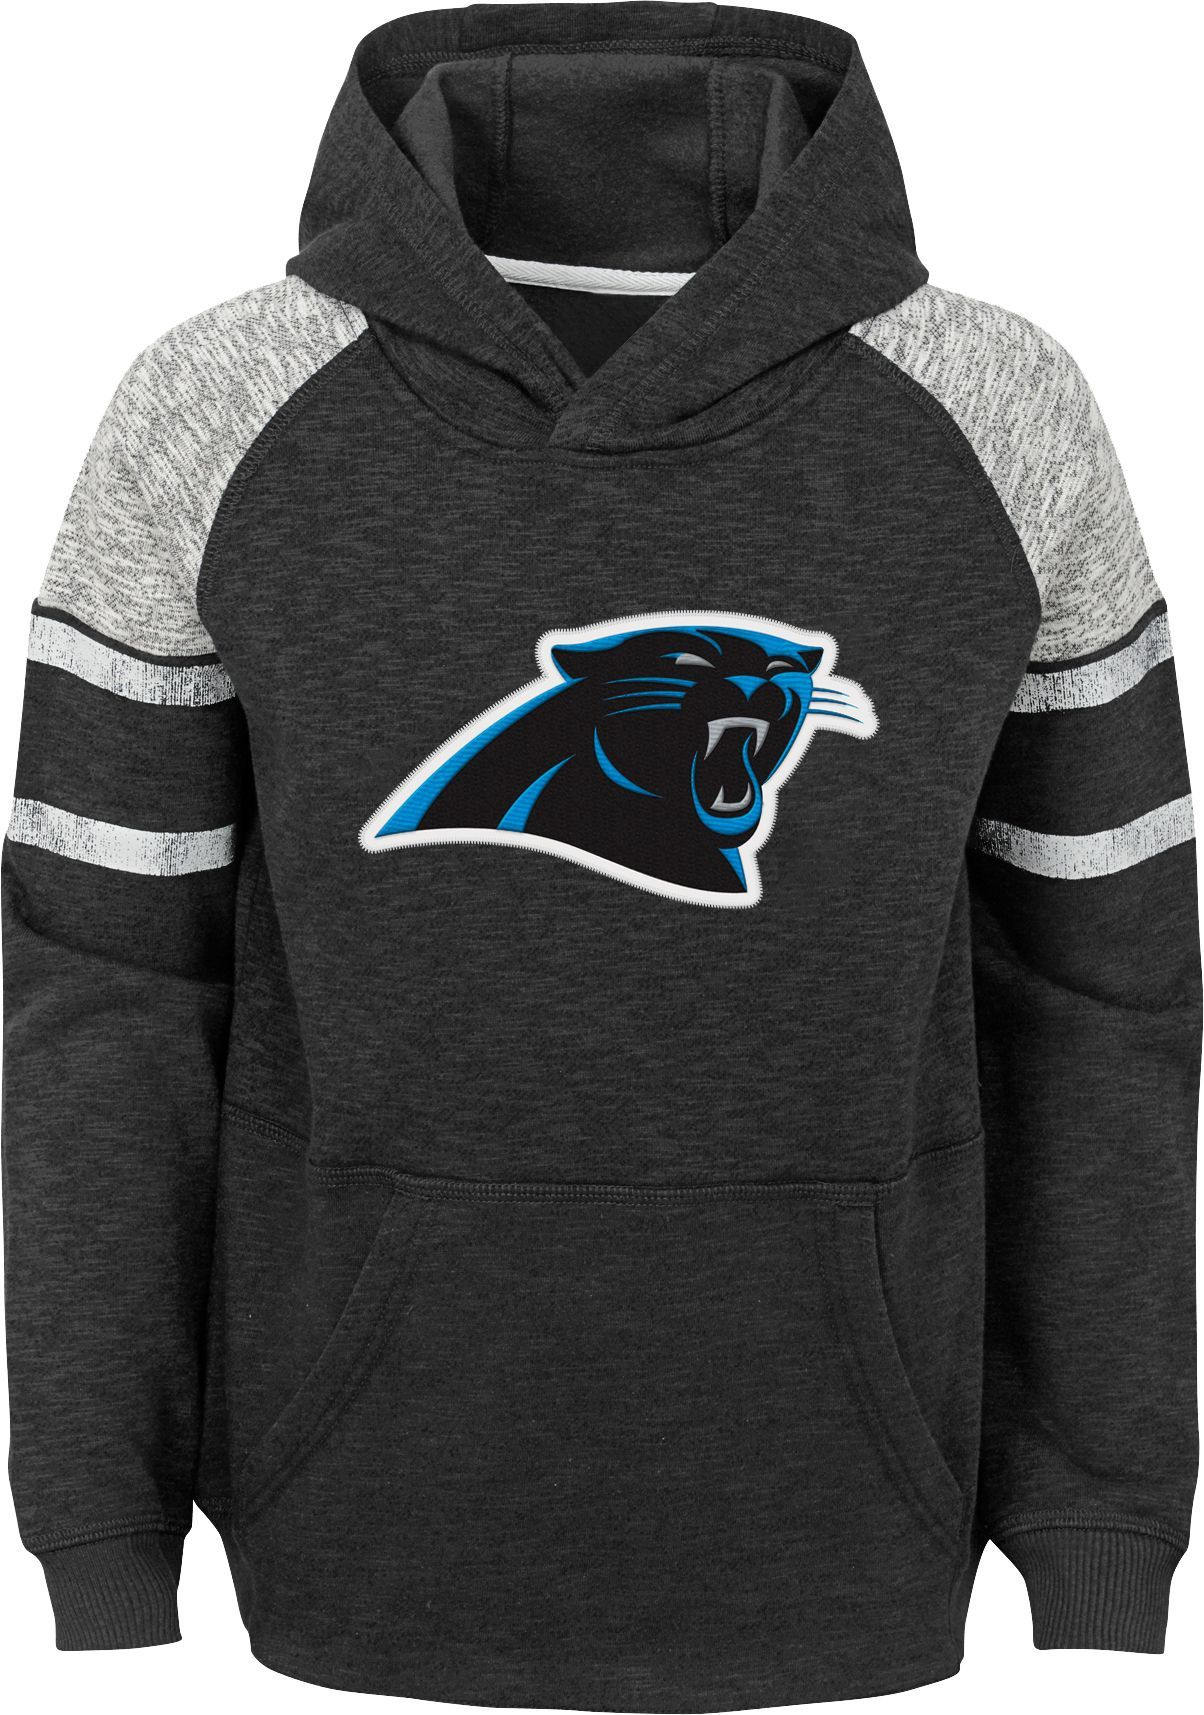 online retailer cdc35 a877e Team Apparel Youth Carolina Linebacker Black Pullover Hoodie ...